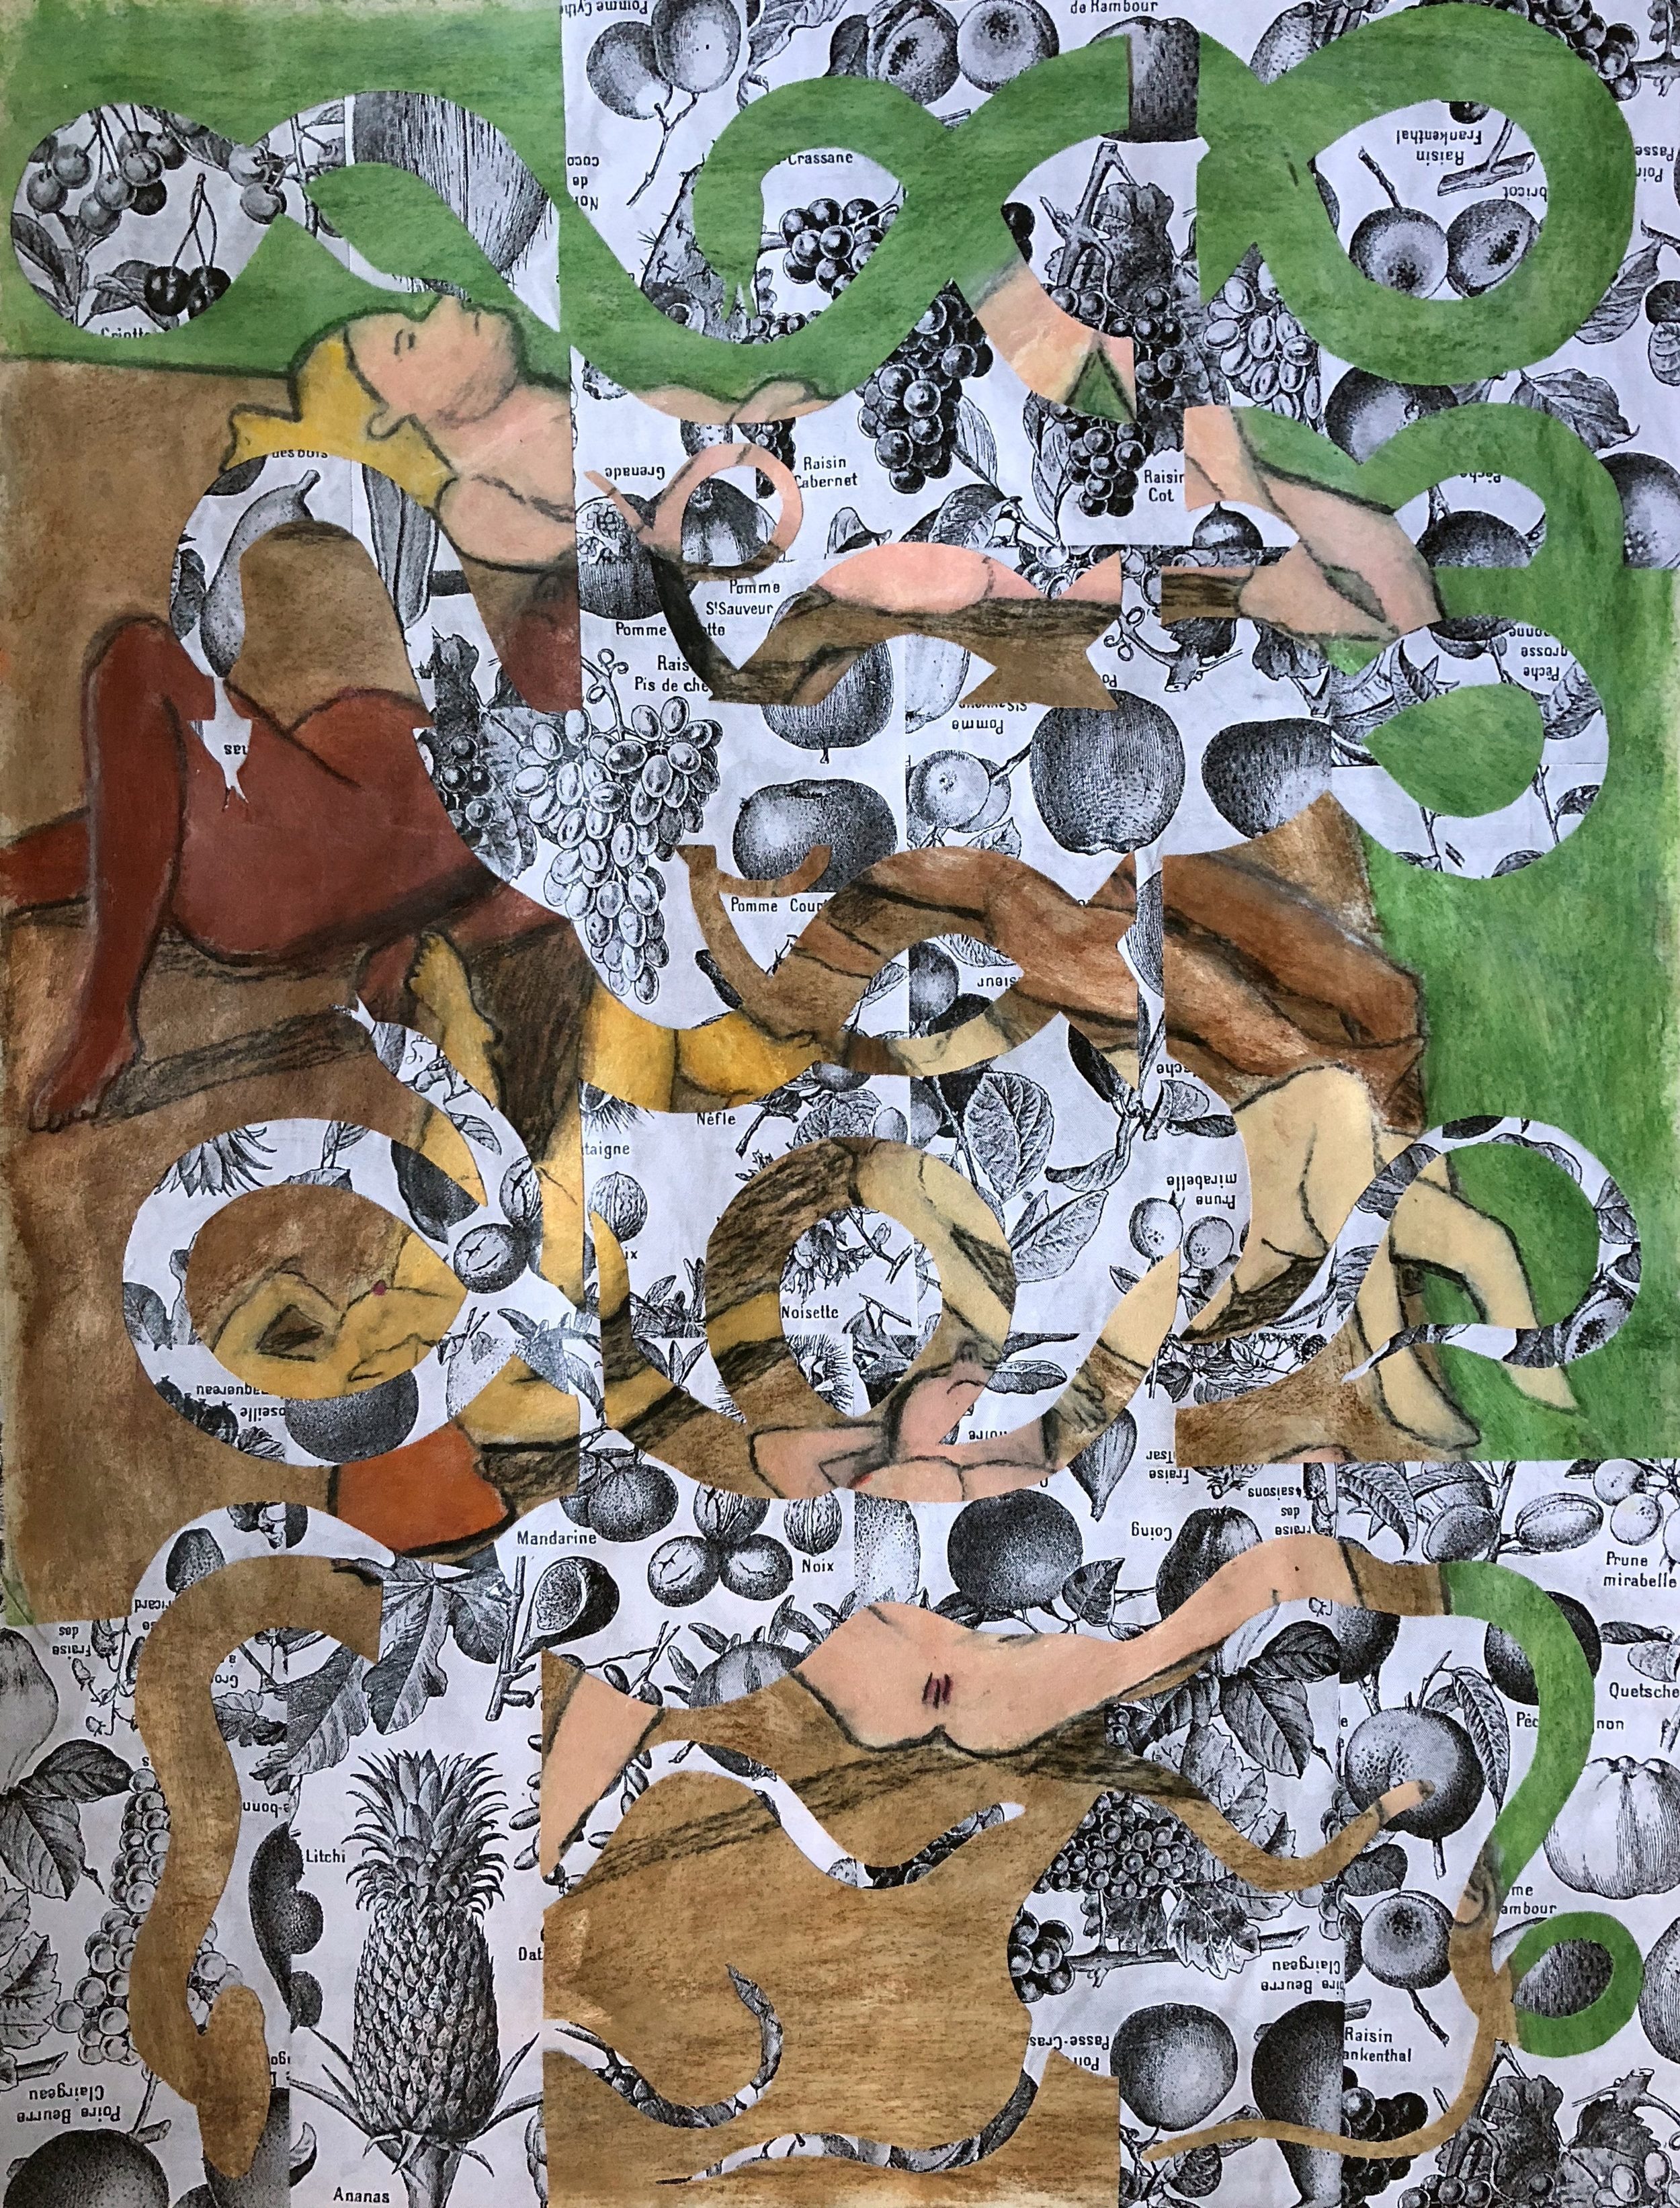 TonyMichaleEstrada - Male Gaze in the Garden of Eden 1 - 43 x 31.5 - pastel drawing cut outs on photo print collage - 2018 - $700.jpg